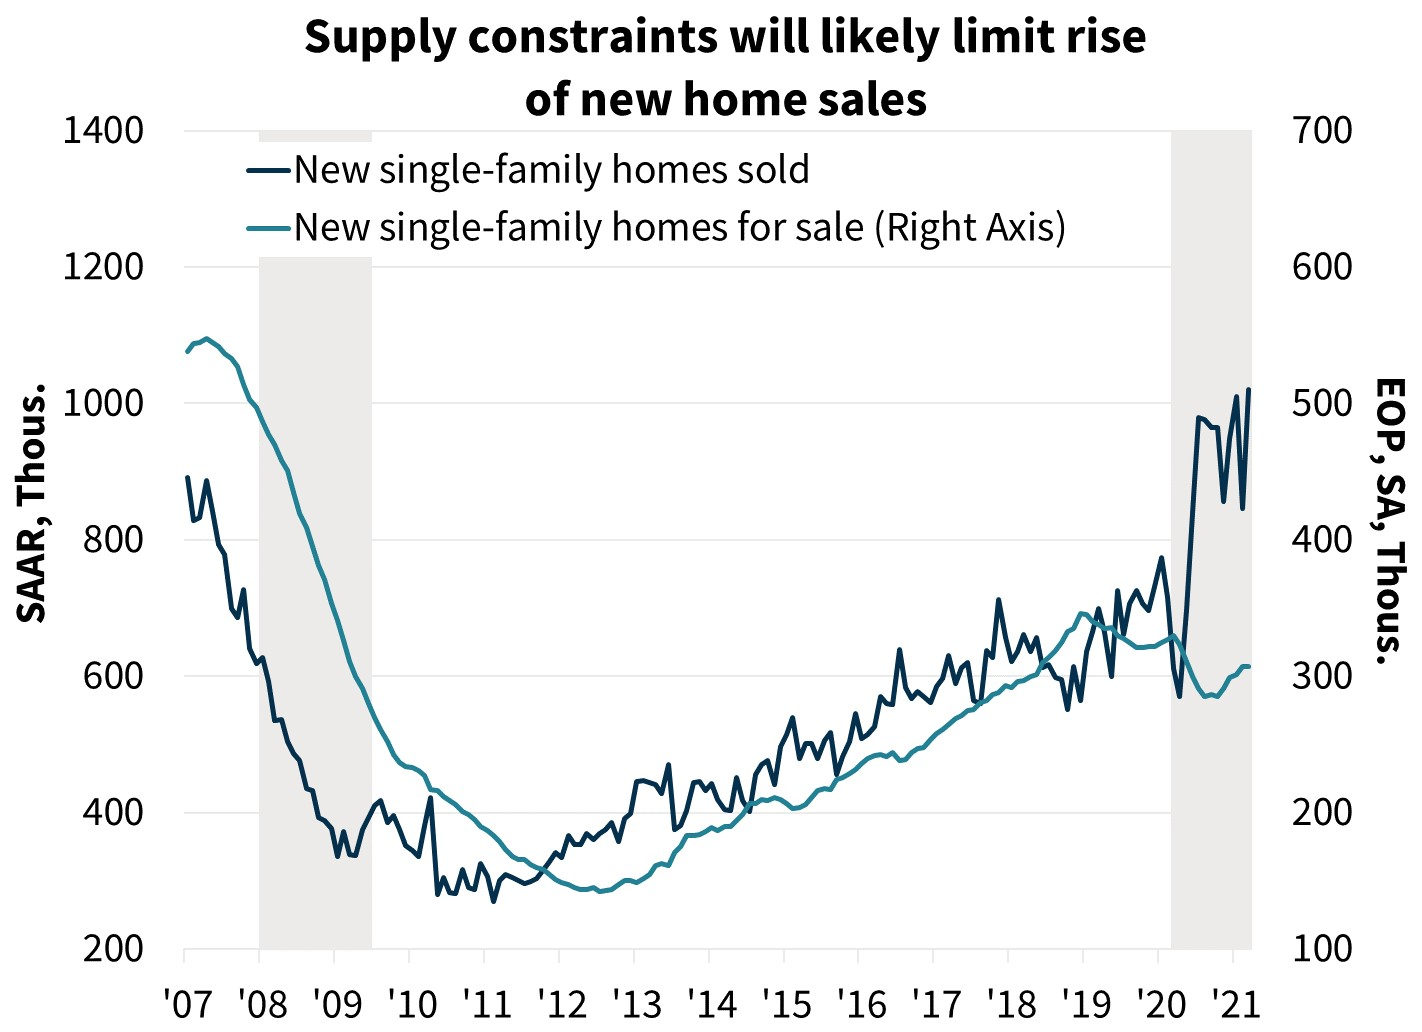 Supply constraints will likely limit rise of new home sales